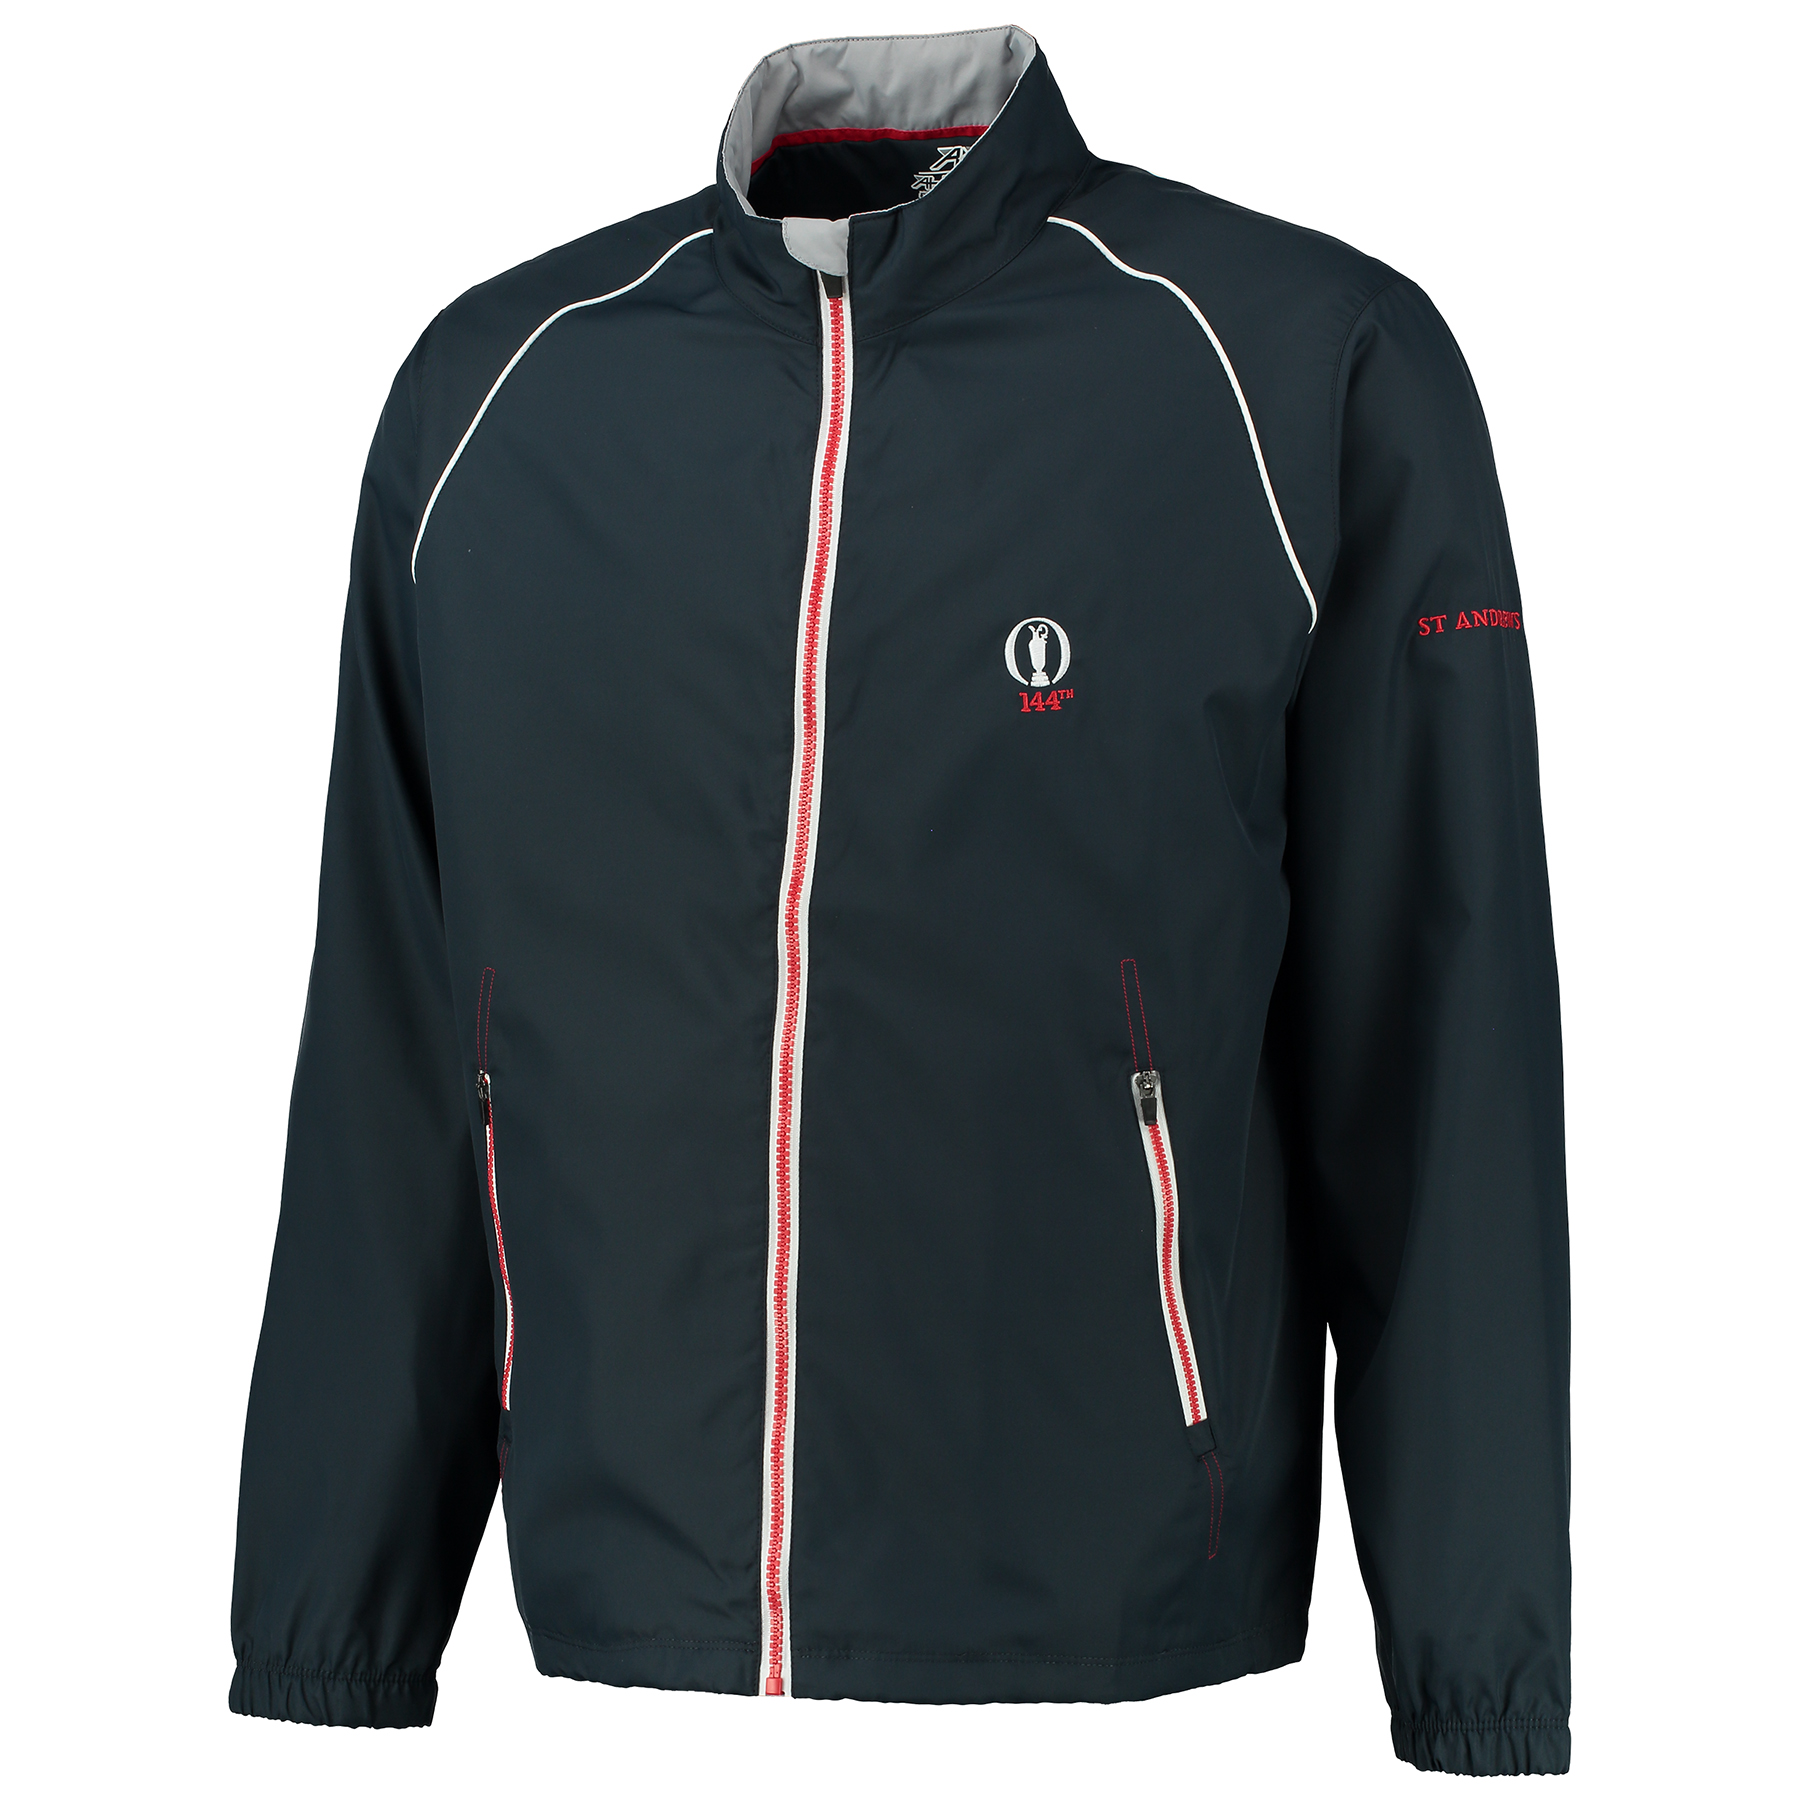 The Open 144th St Andrews Greenwich Full Zip Lightweight Tech Wind Jacket - Navy/Carbon